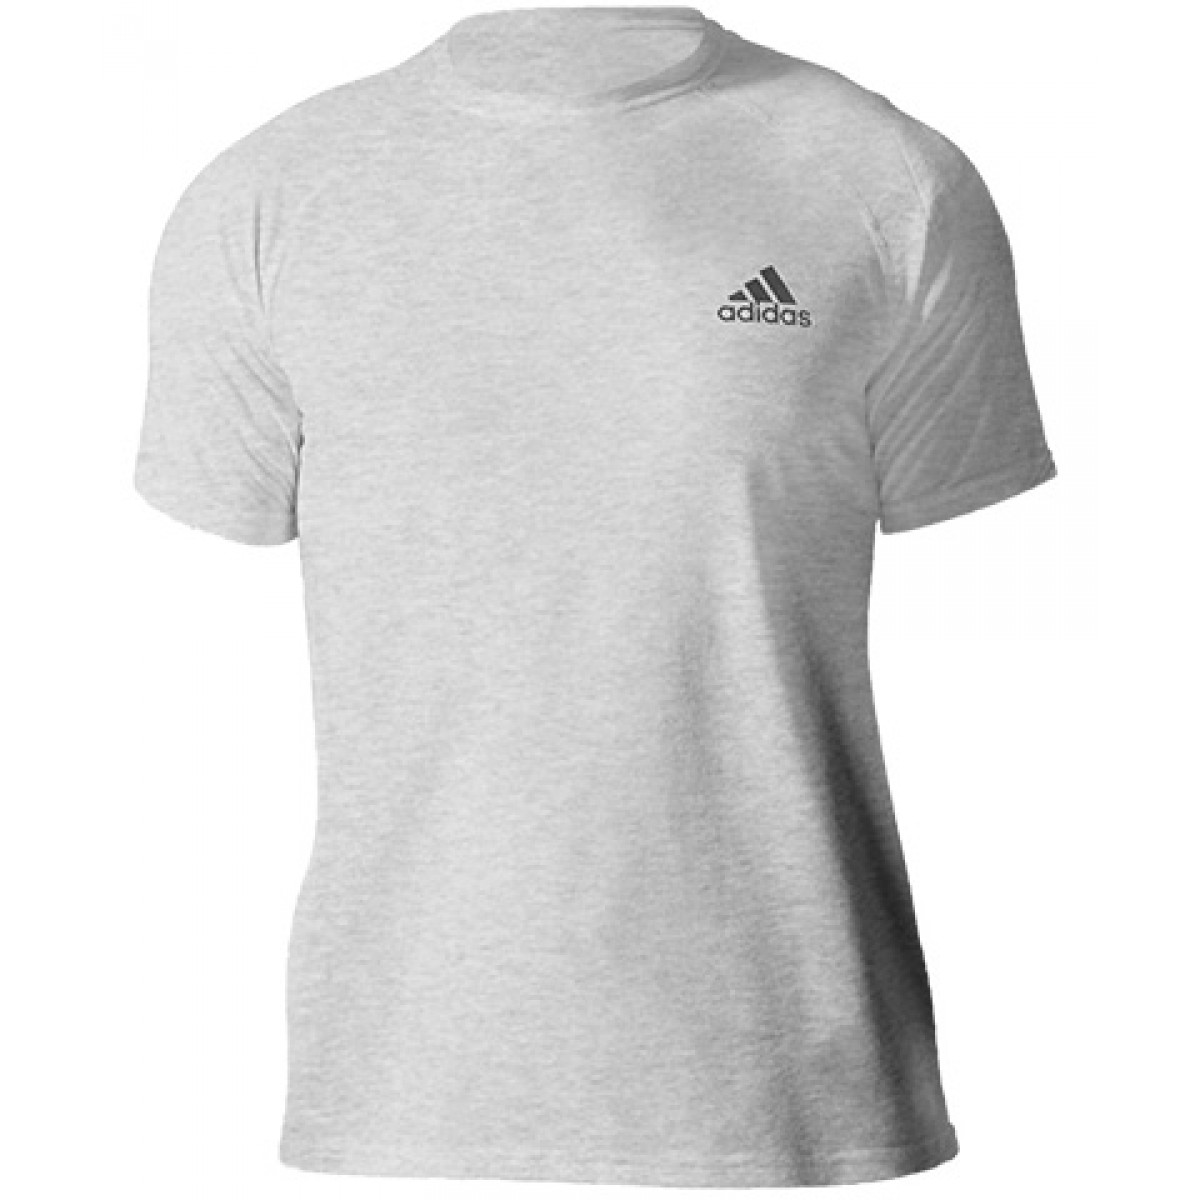 Adidas Embroidered Logo Essential Crew Neck T-shirt-Sports Grey-M